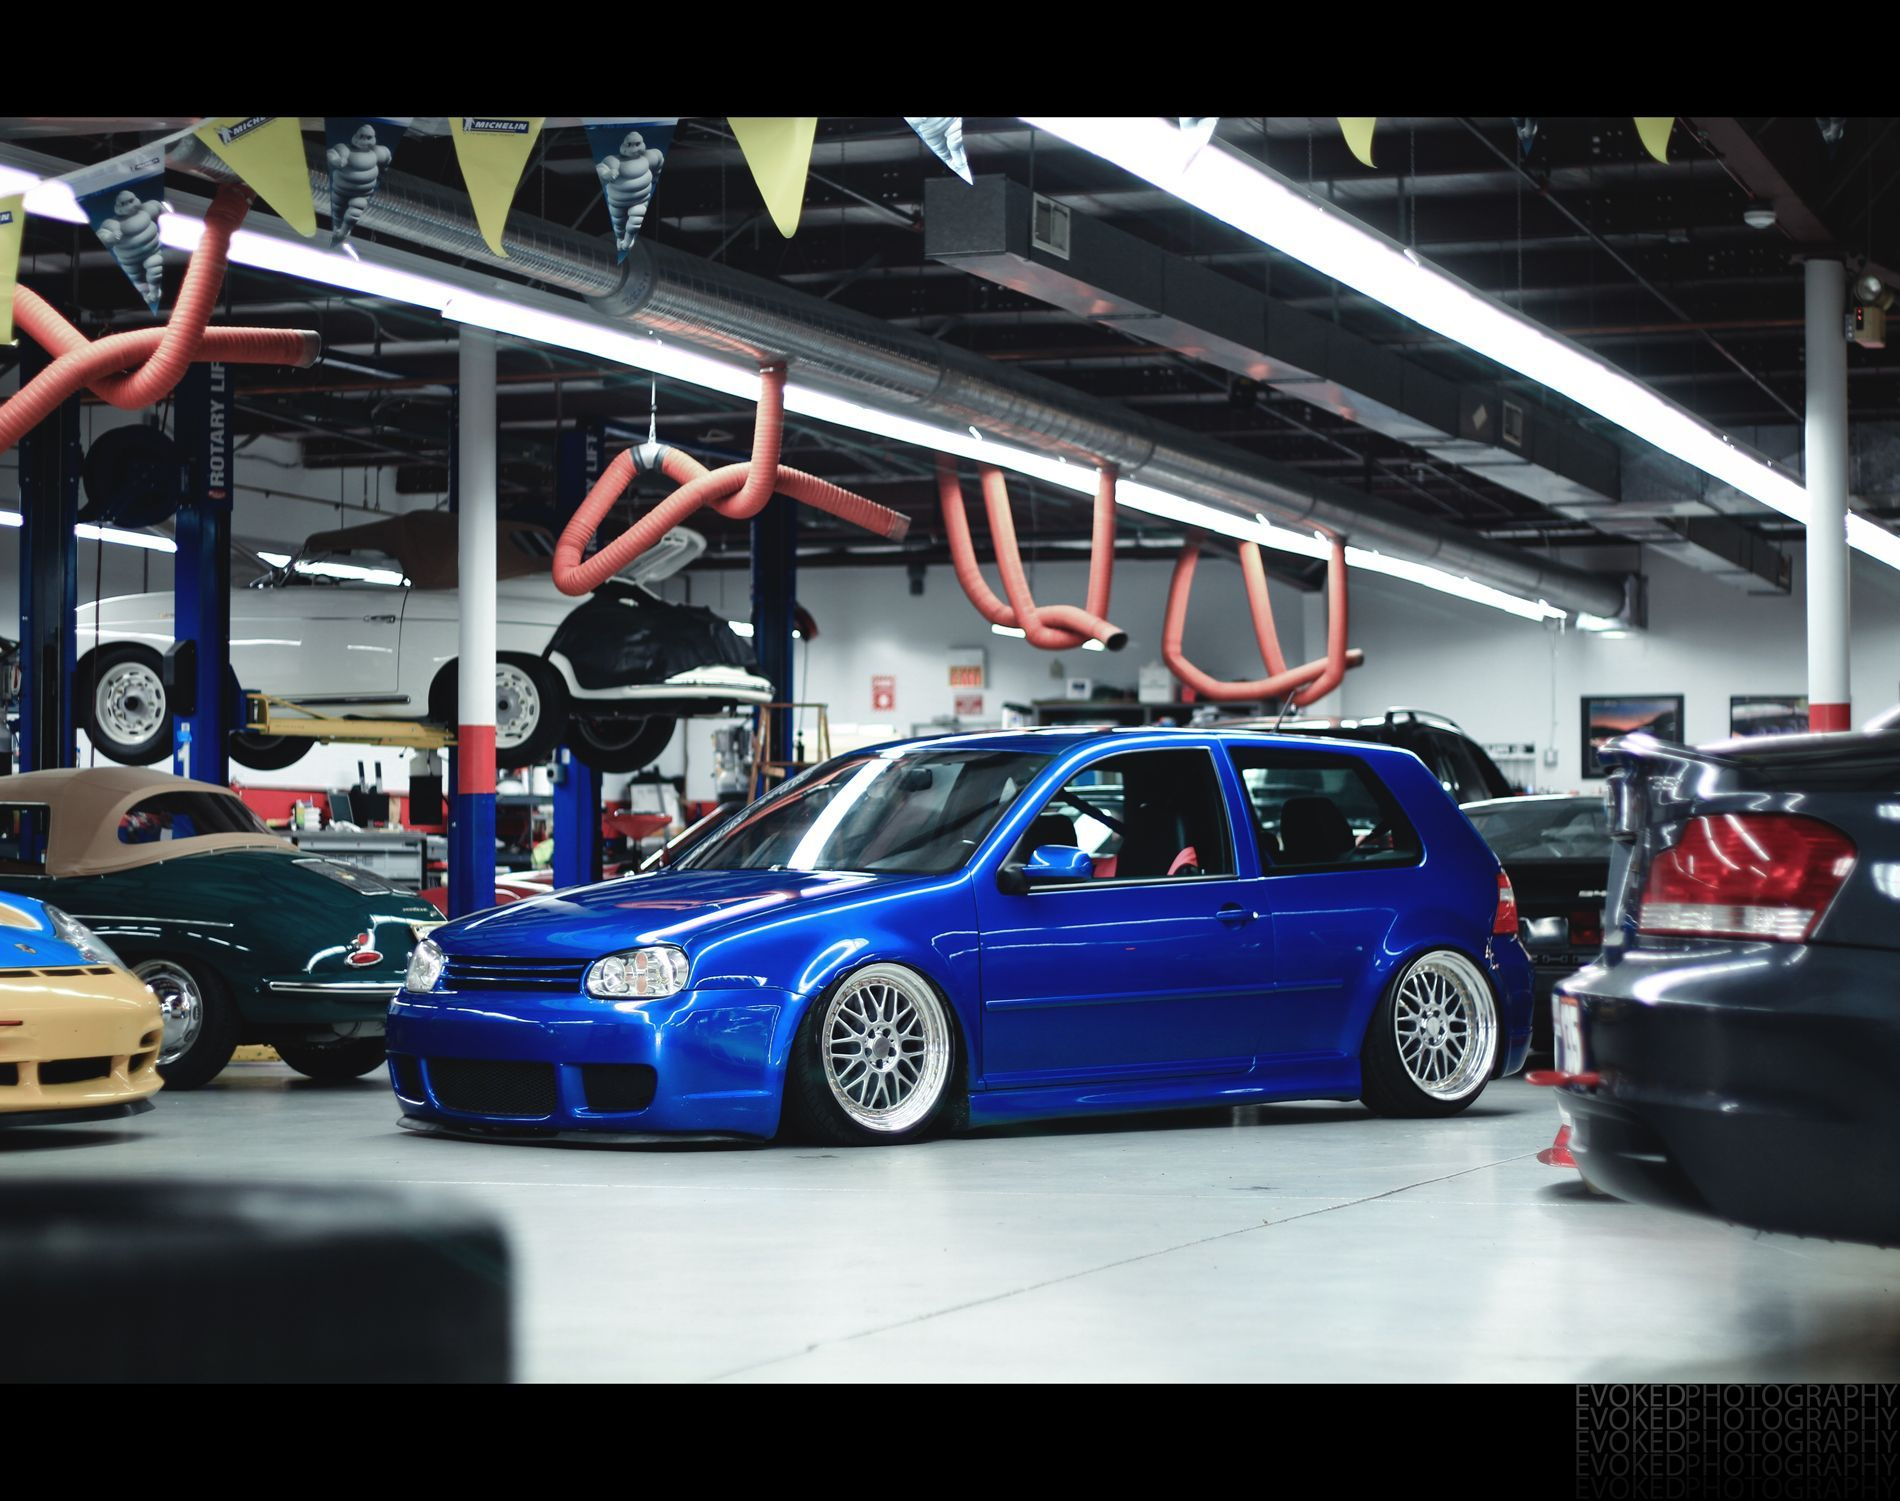 Mk4 R32 Slammed On Bbs Love That Color Vwgolfmk4 Volkswagen Volkswagen Golf Mk1 Volkswagen Golf